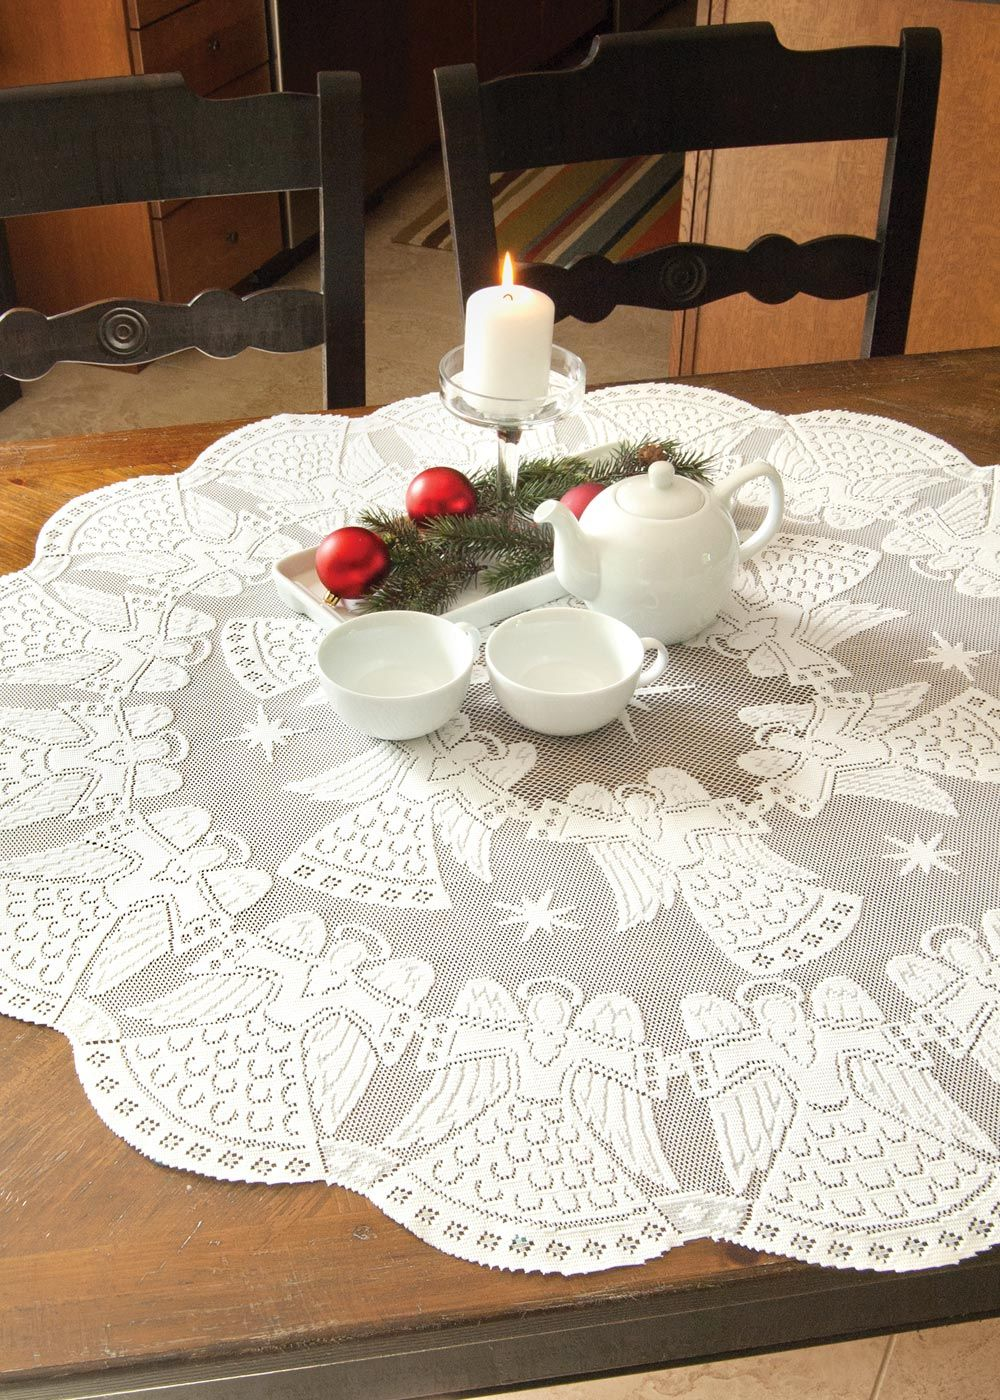 Glorious Angels Round Lace Table Topper! #Christmas #Decor #Party #Holiday  #winter